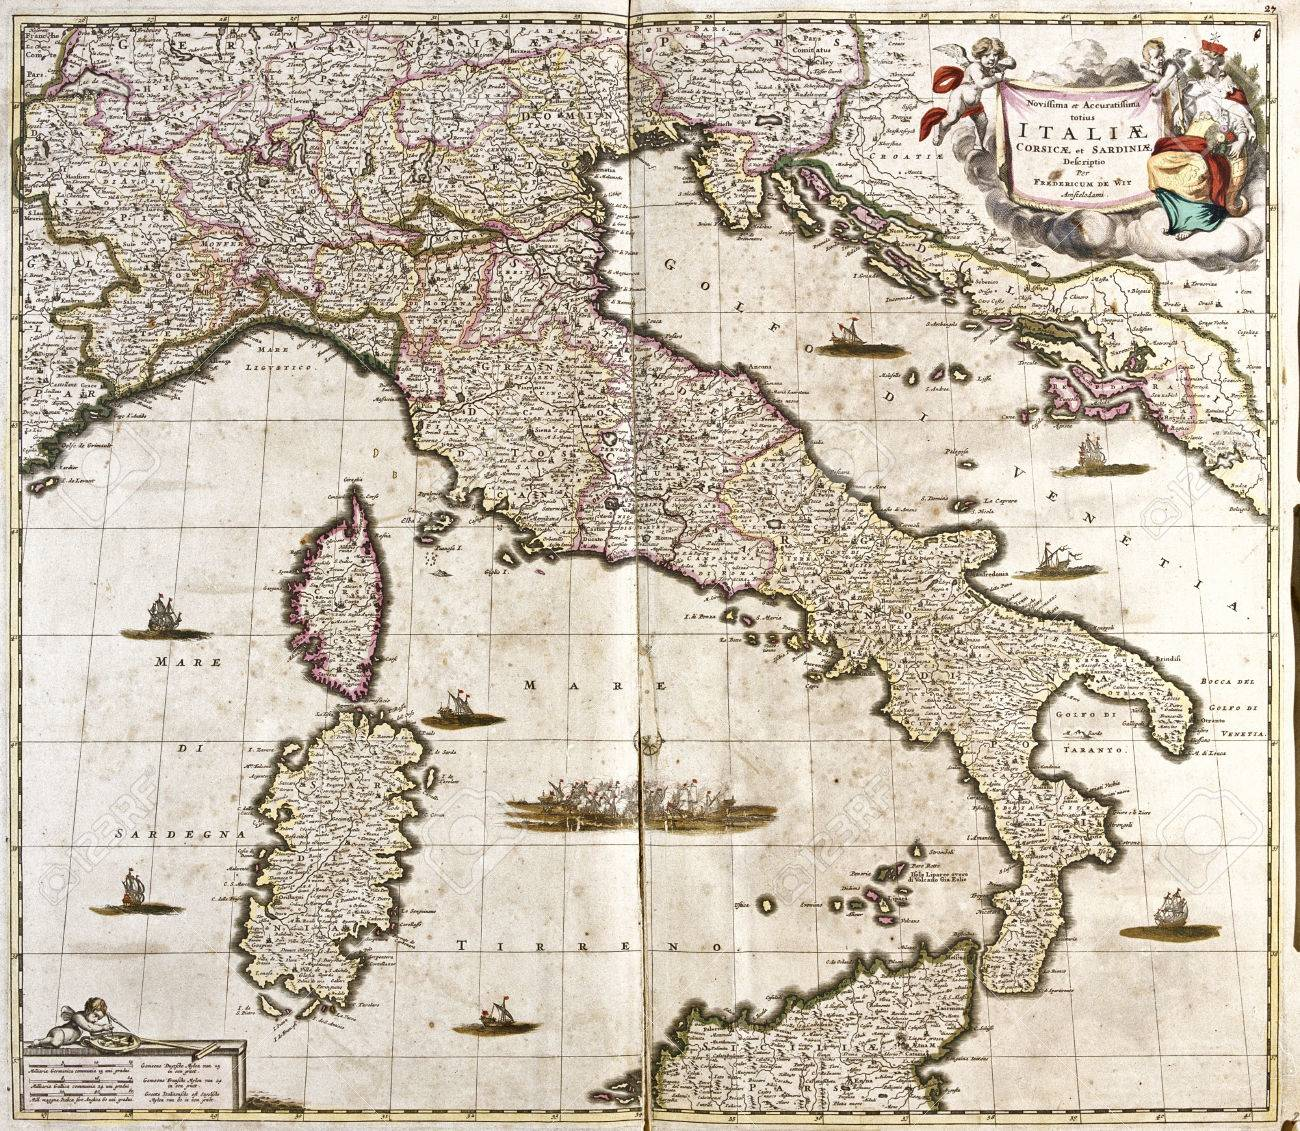 Old map of italy with corsica and sardinia stock photo picture and old map of italy with corsica and sardinia stock photo 42101441 gumiabroncs Choice Image